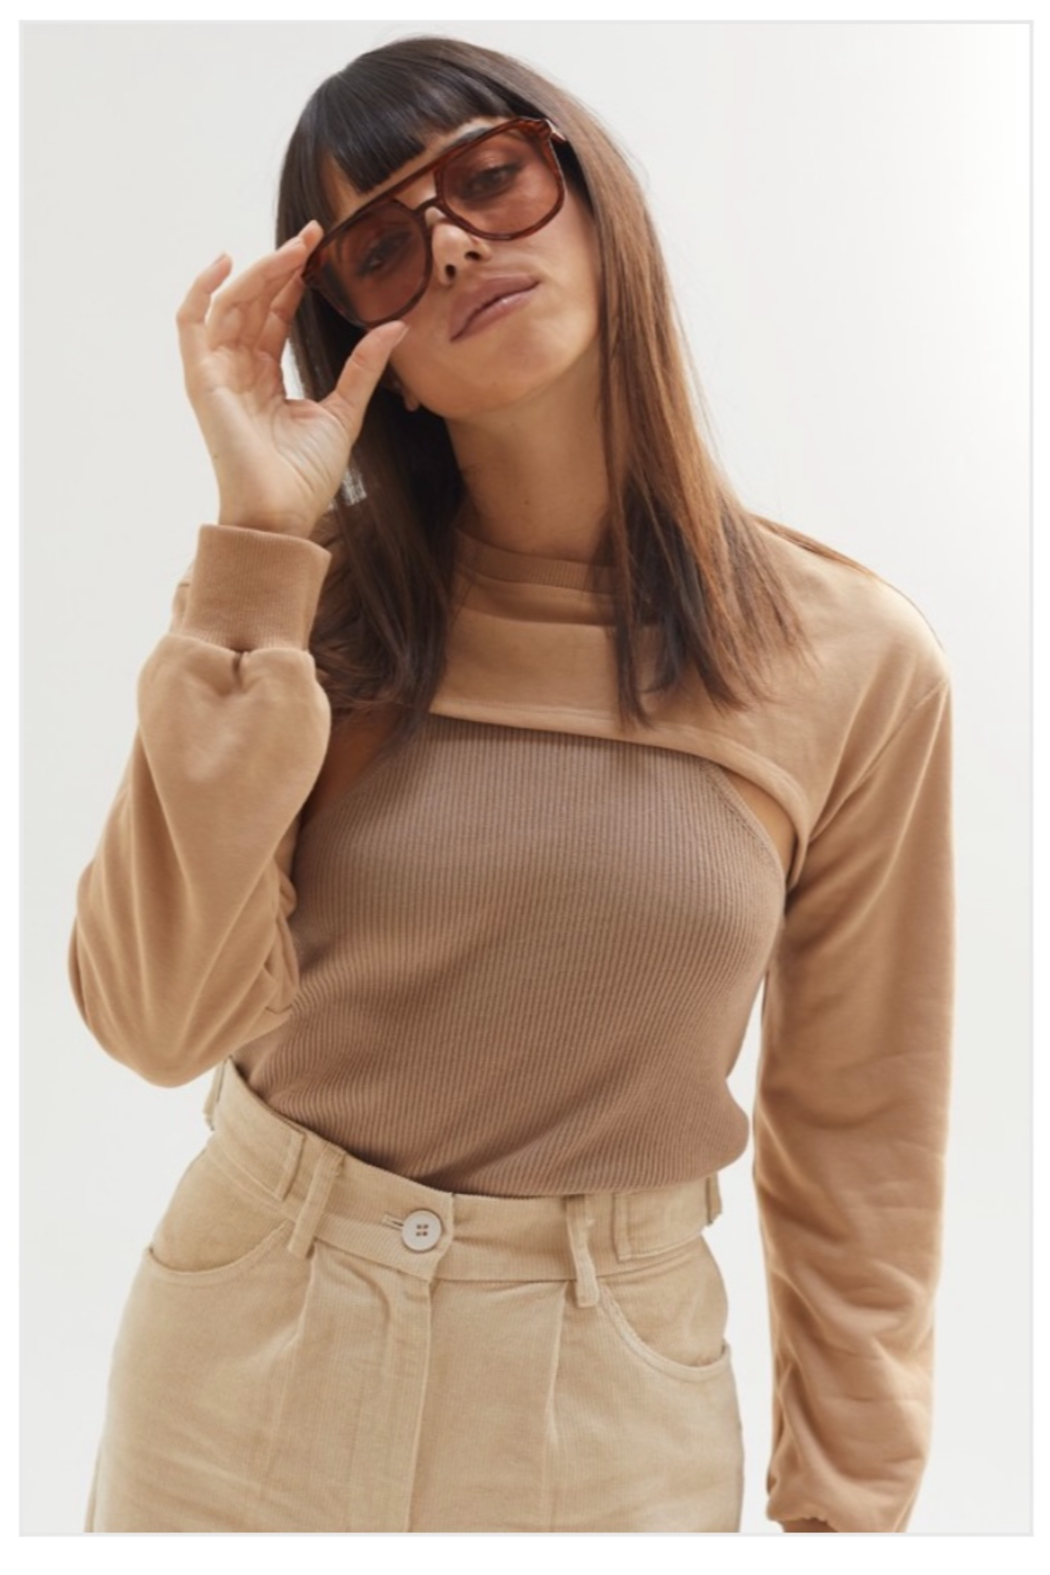 crescent Harris Cropped Sweatshirt, Olive and Camel - Main Image